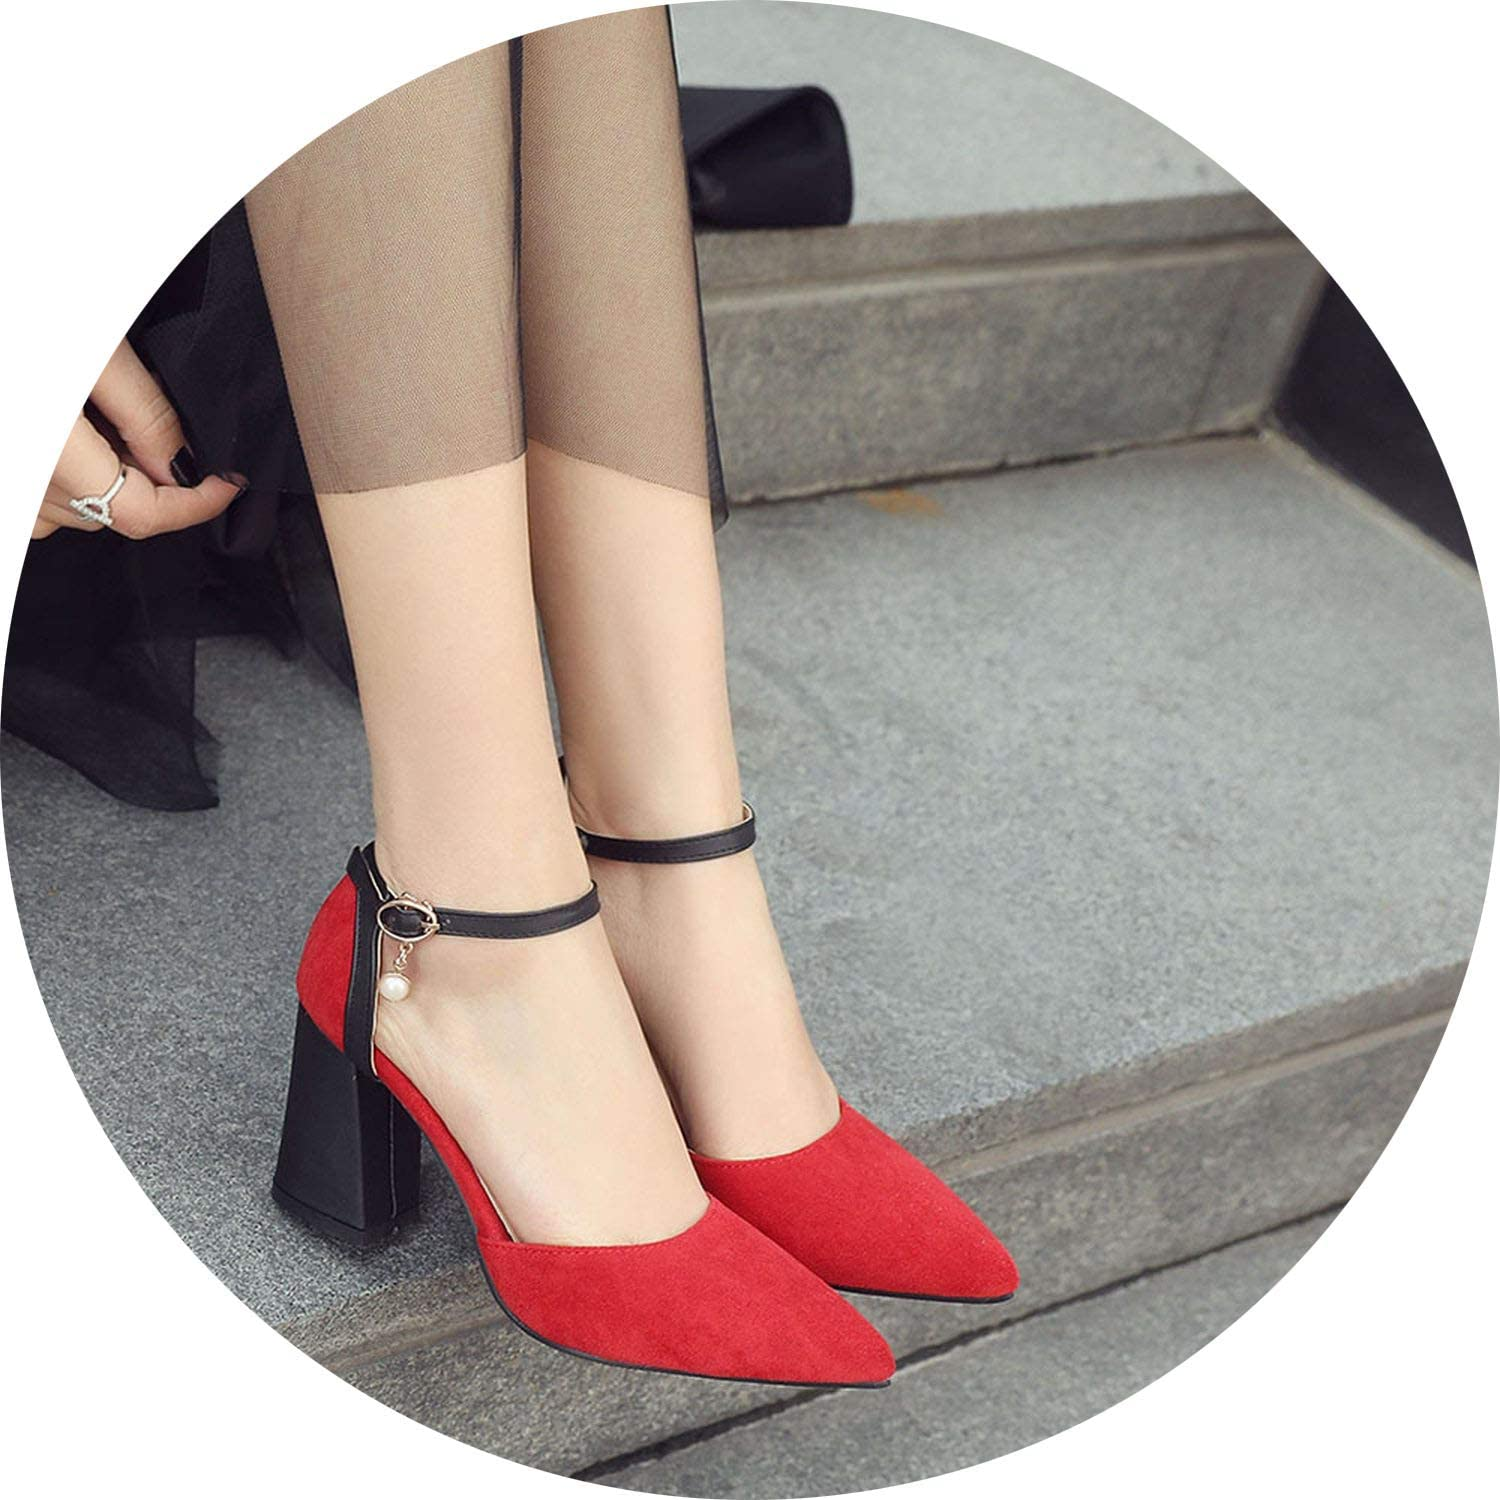 Get-in Dress shoes High Heels Boat shoes Wedding shoes Pointed Toe Thick Heel Buckle Pumps